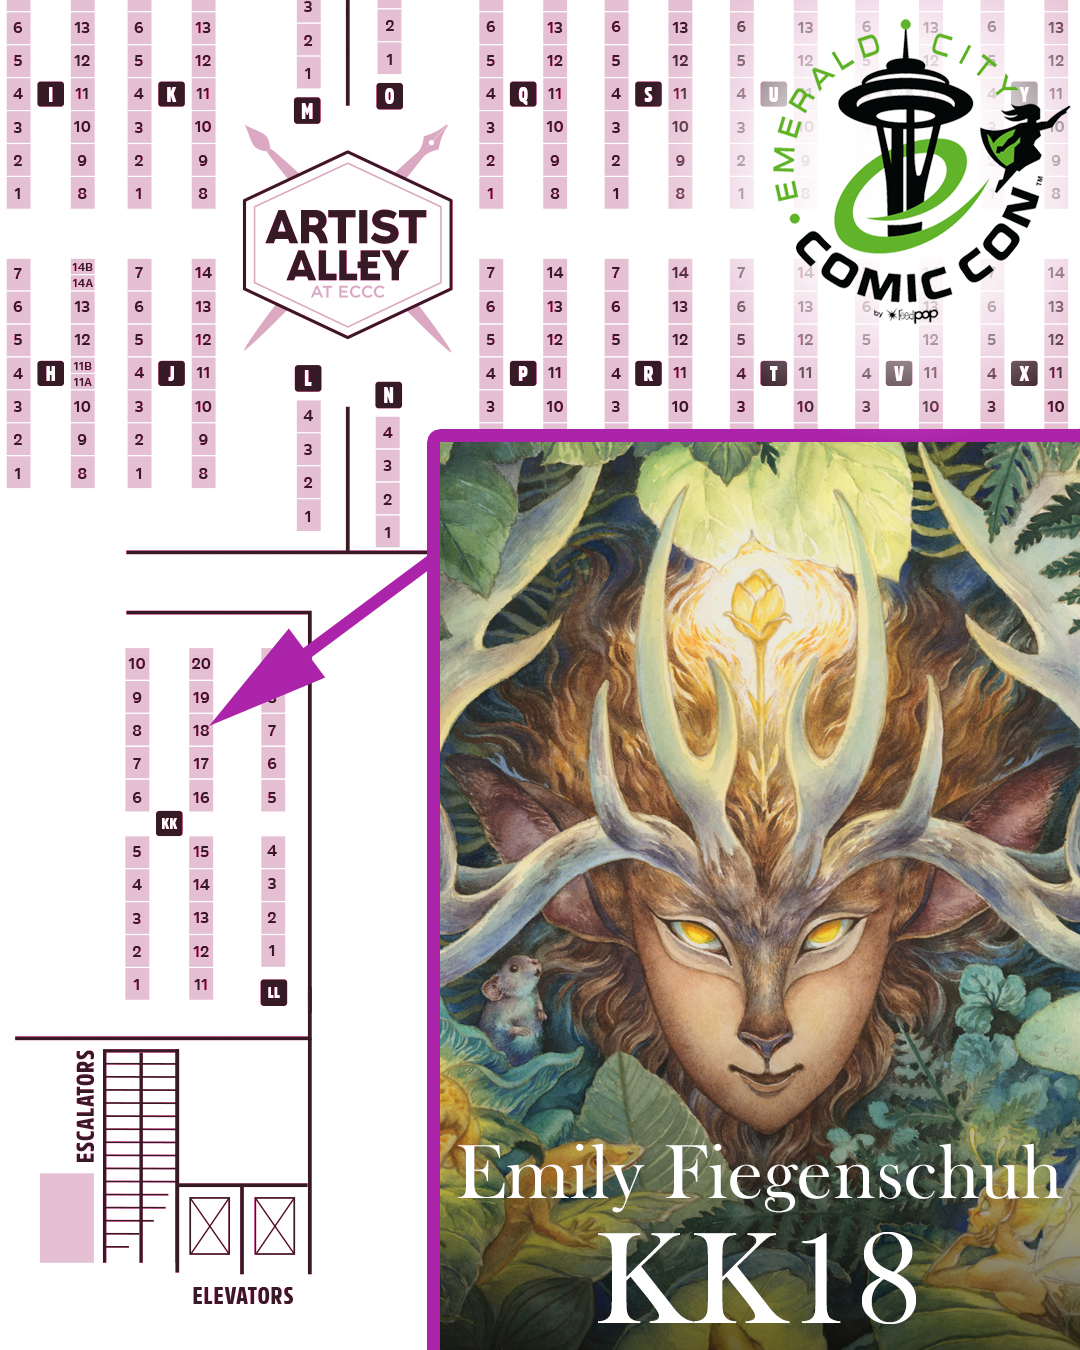 A map of ECCC 2019's Artist Alley. I will be at booth KK18!